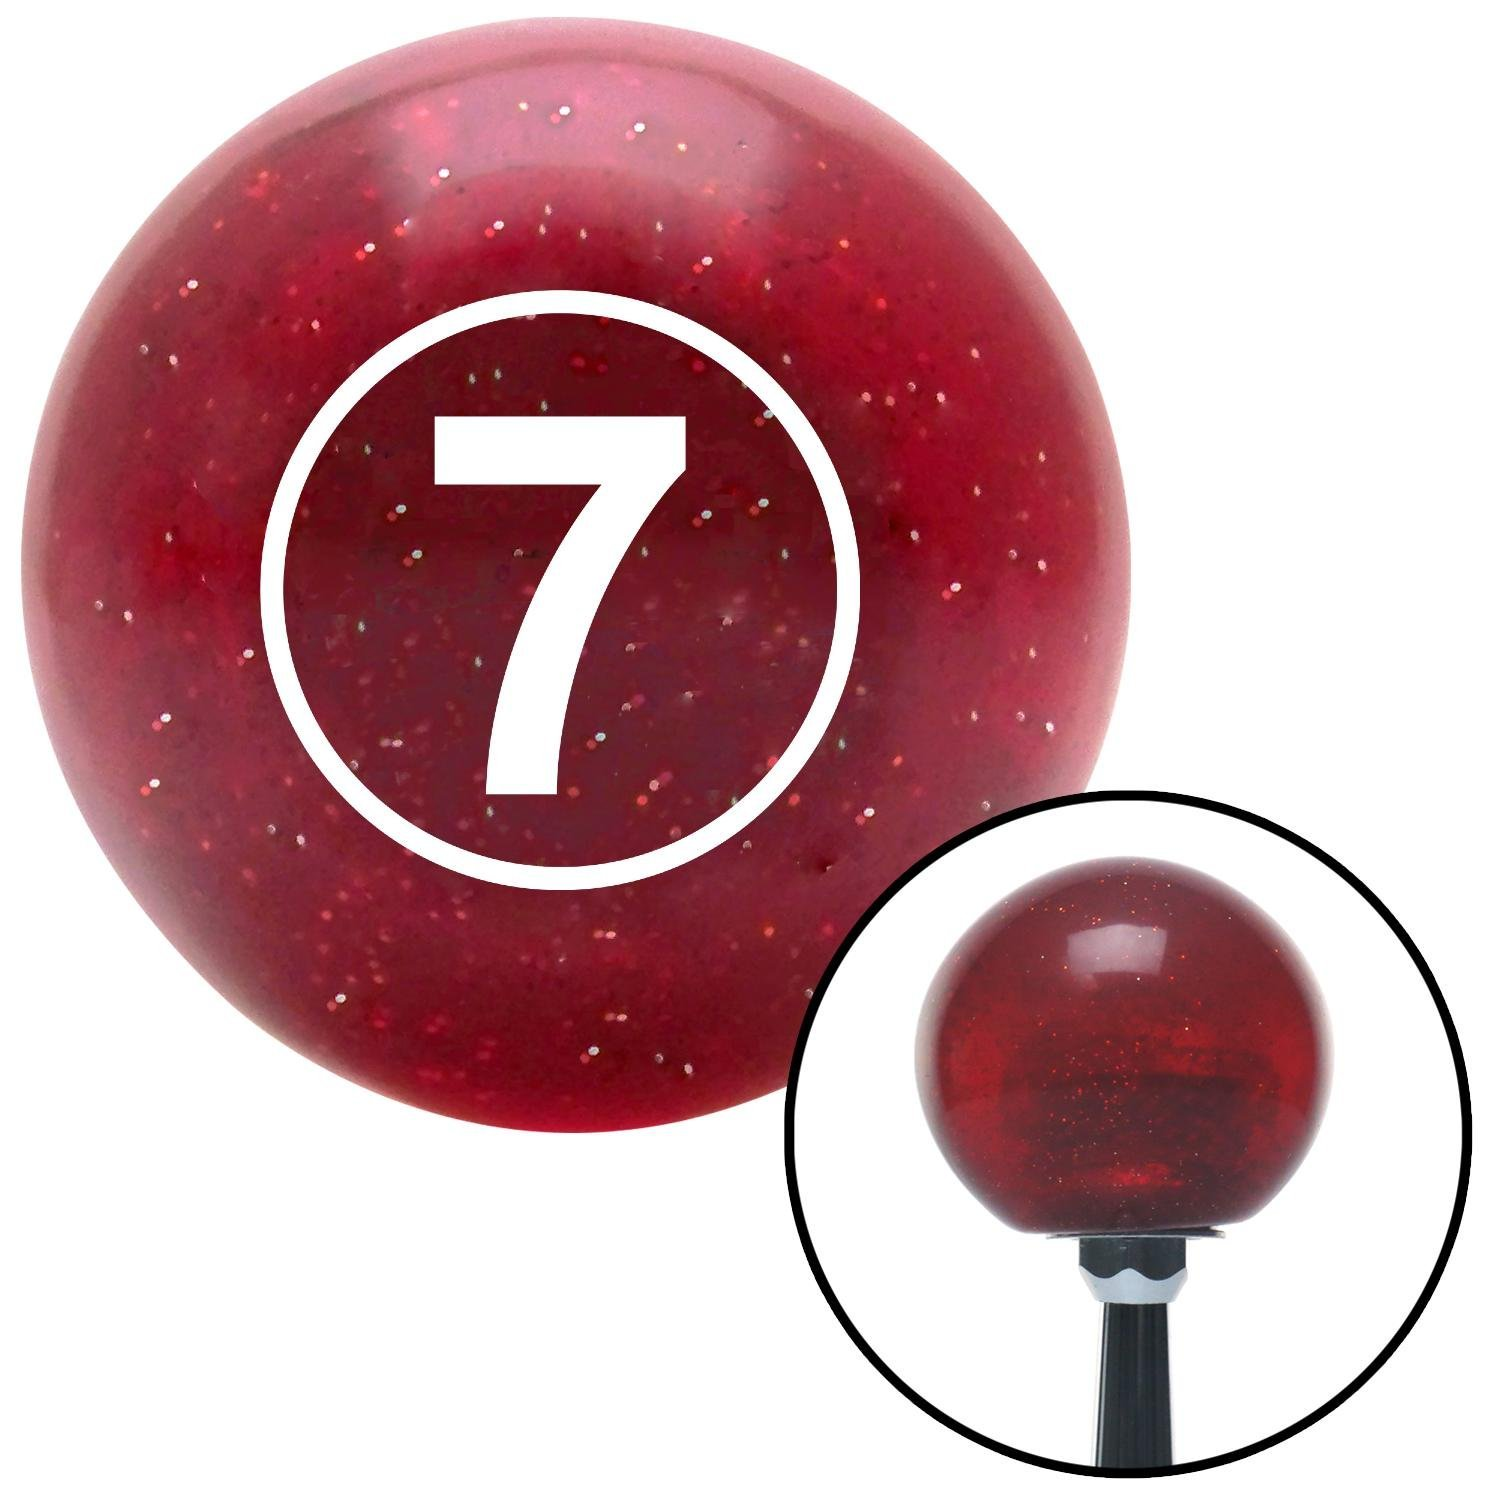 White Ball #7 American Shifter 47513 Red Metal Flake Shift Knob with 16mm x 1.5 Insert